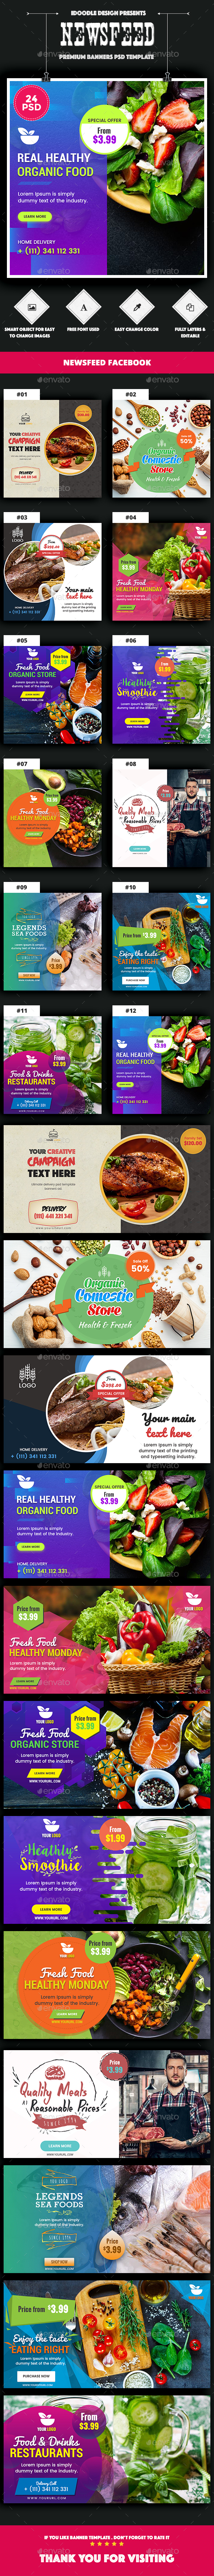 NewsFeed Food & Restaurant, Organic Comestic, Drinks Juice Banner Ad – 24PSD